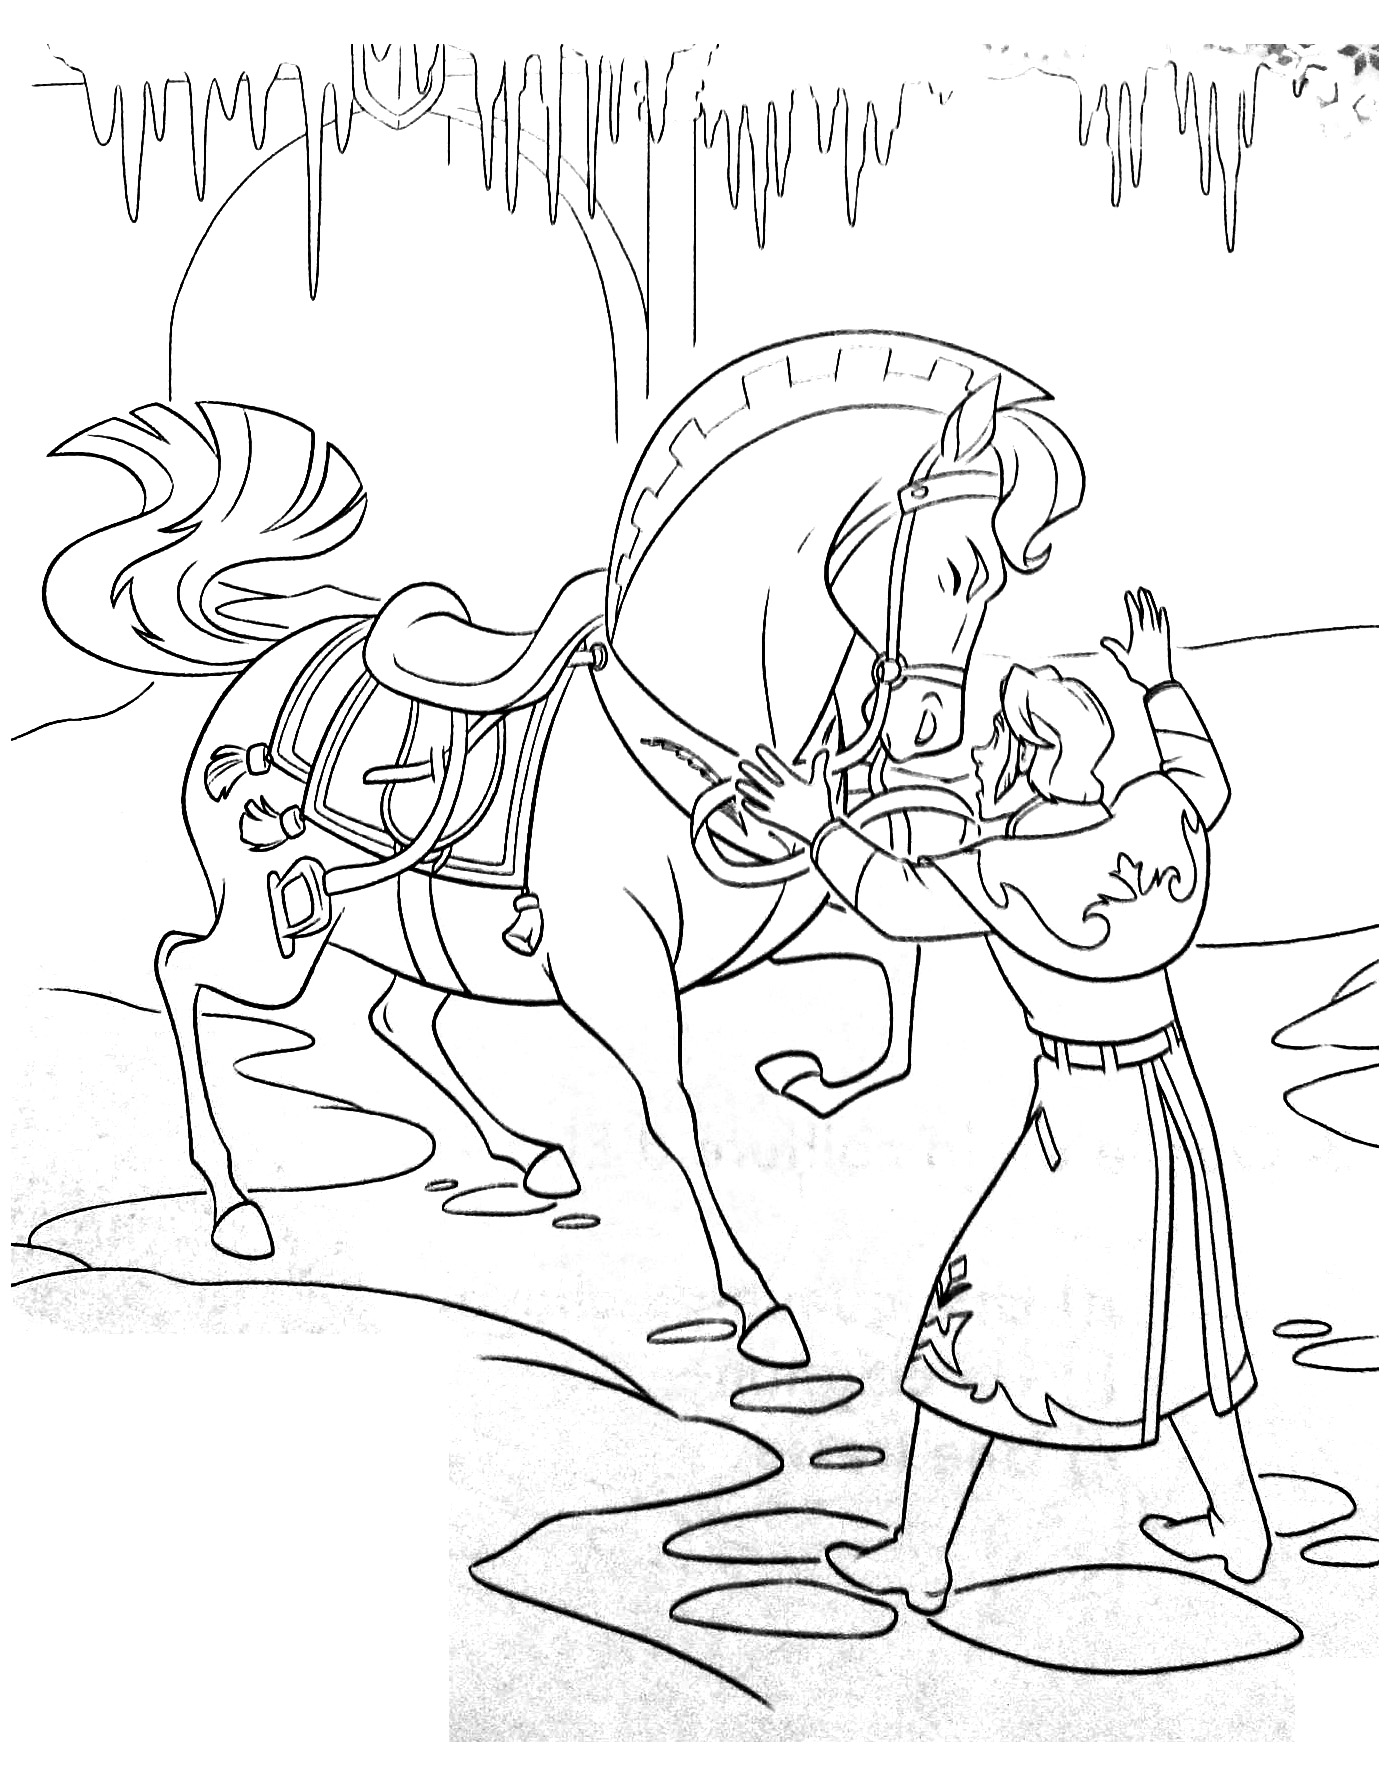 Frozen to color for kids - Frozen Kids Coloring Pages